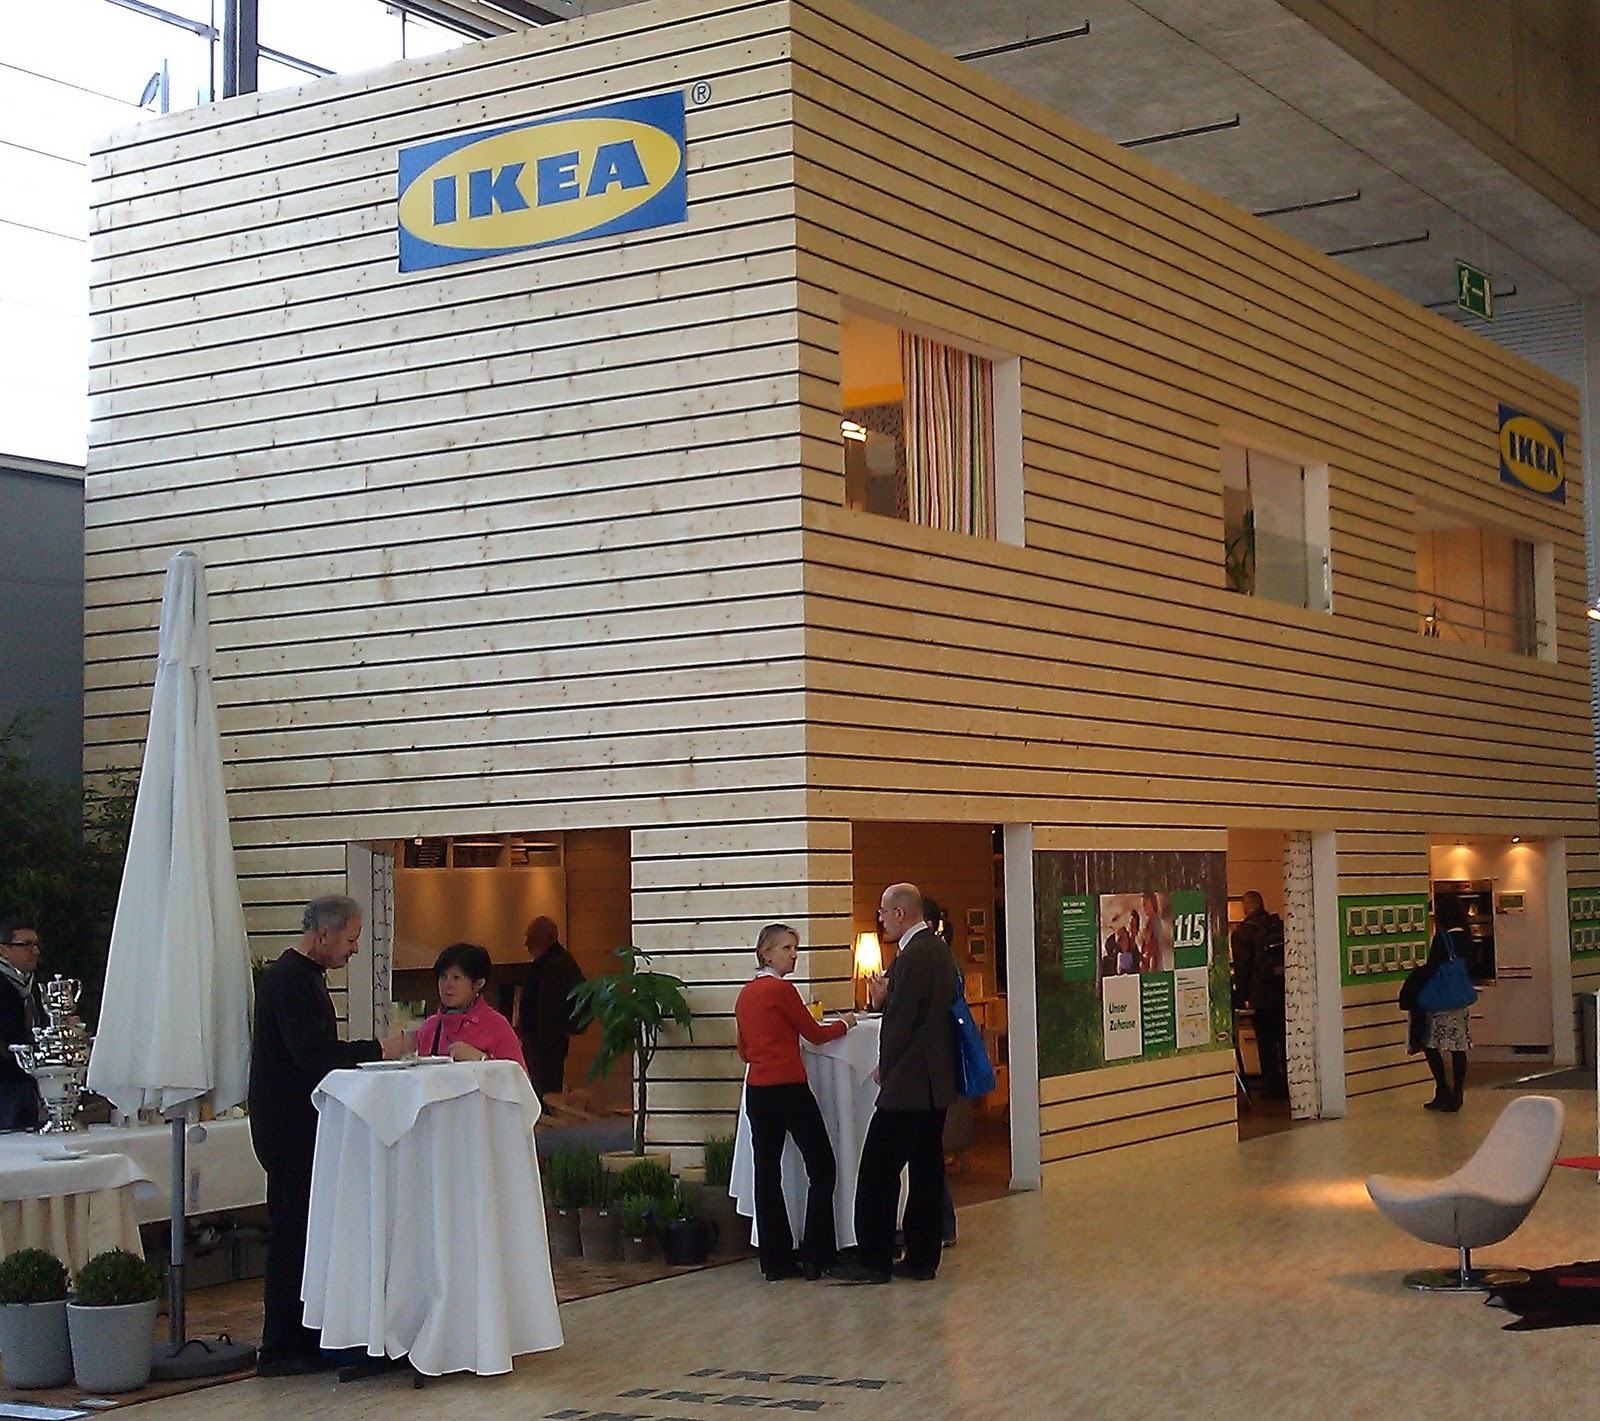 Ikea Küche Aktion Wien Kata B Log11 13 03 11 20 03 11